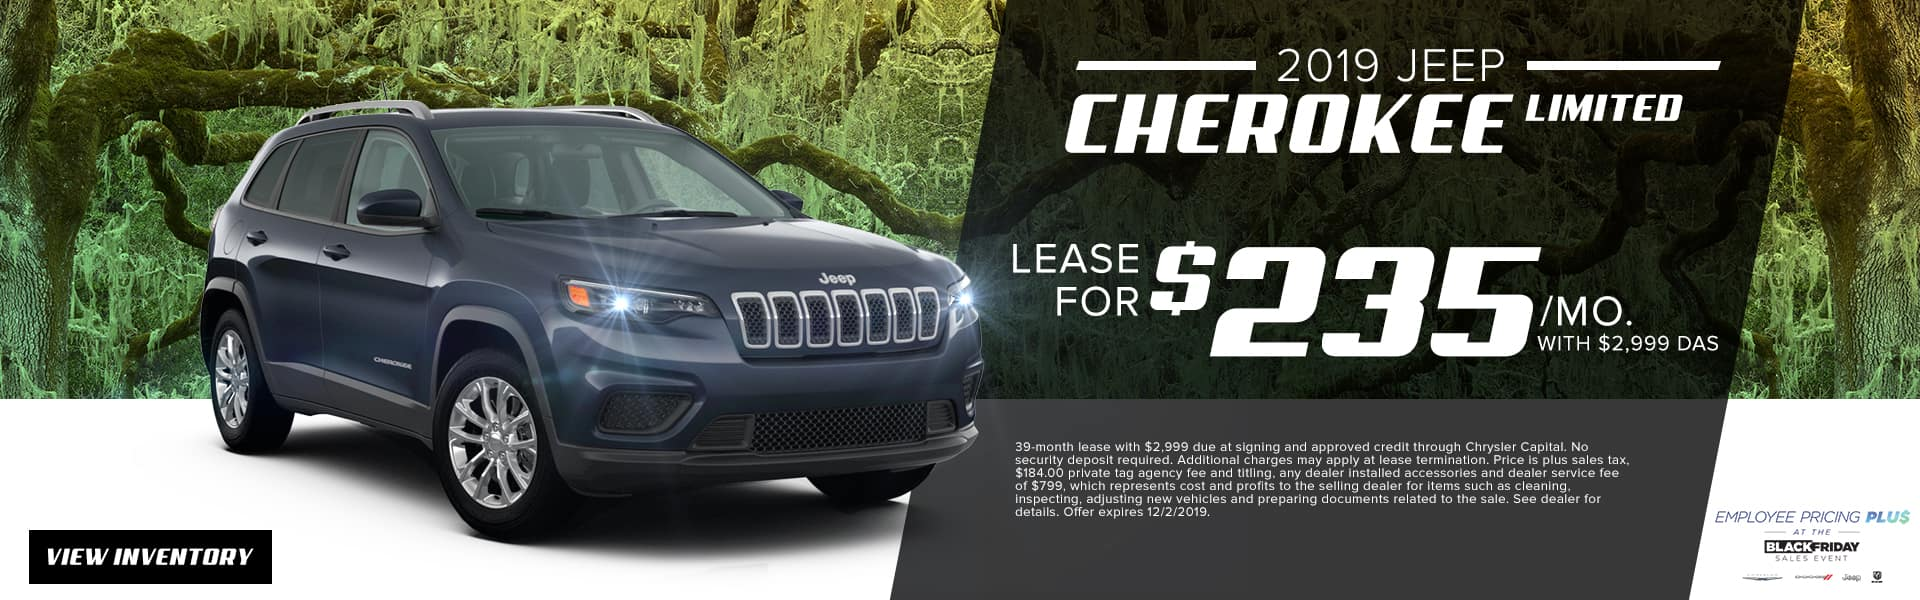 2019 Jeep Cherokee Limited | Lease For $235 Per Month With $2,999 Due At Signing